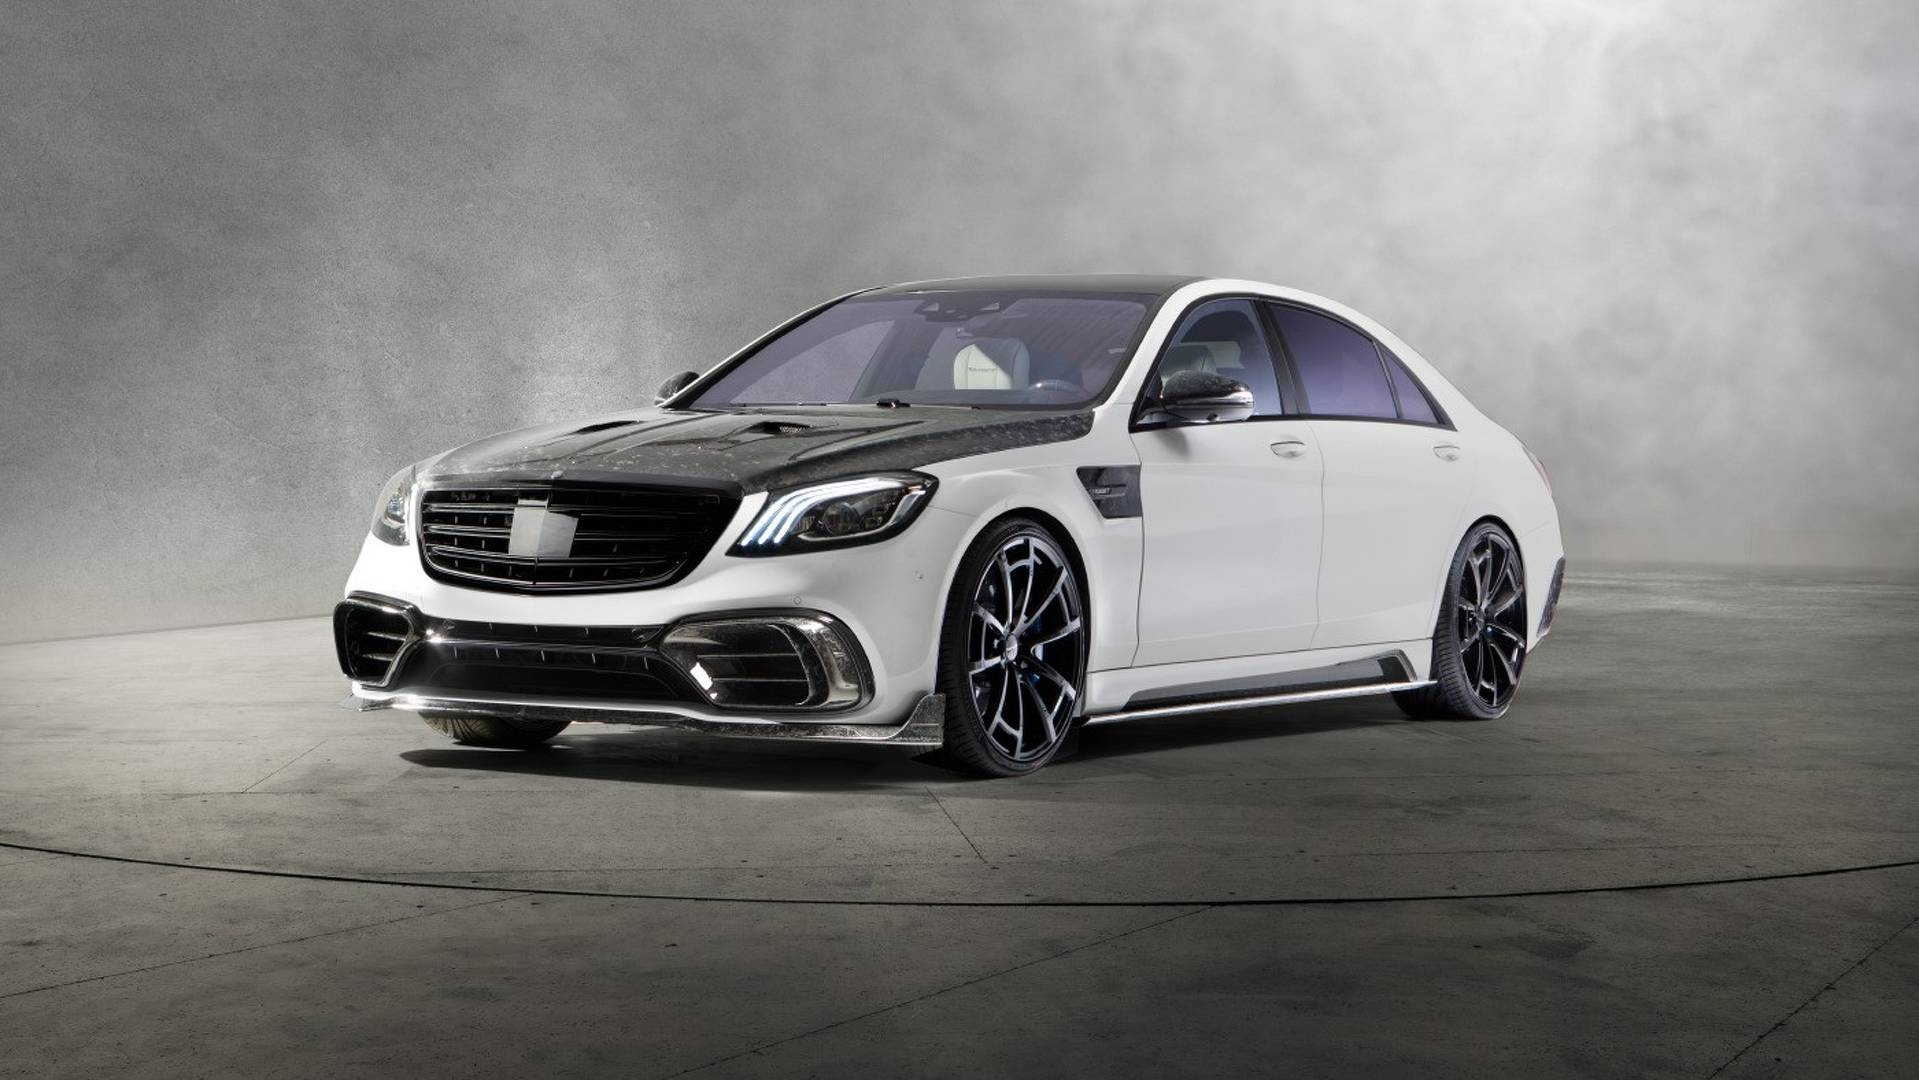 Mansory never mentioned the cost of their Mercedes-AMG S 63 redesign